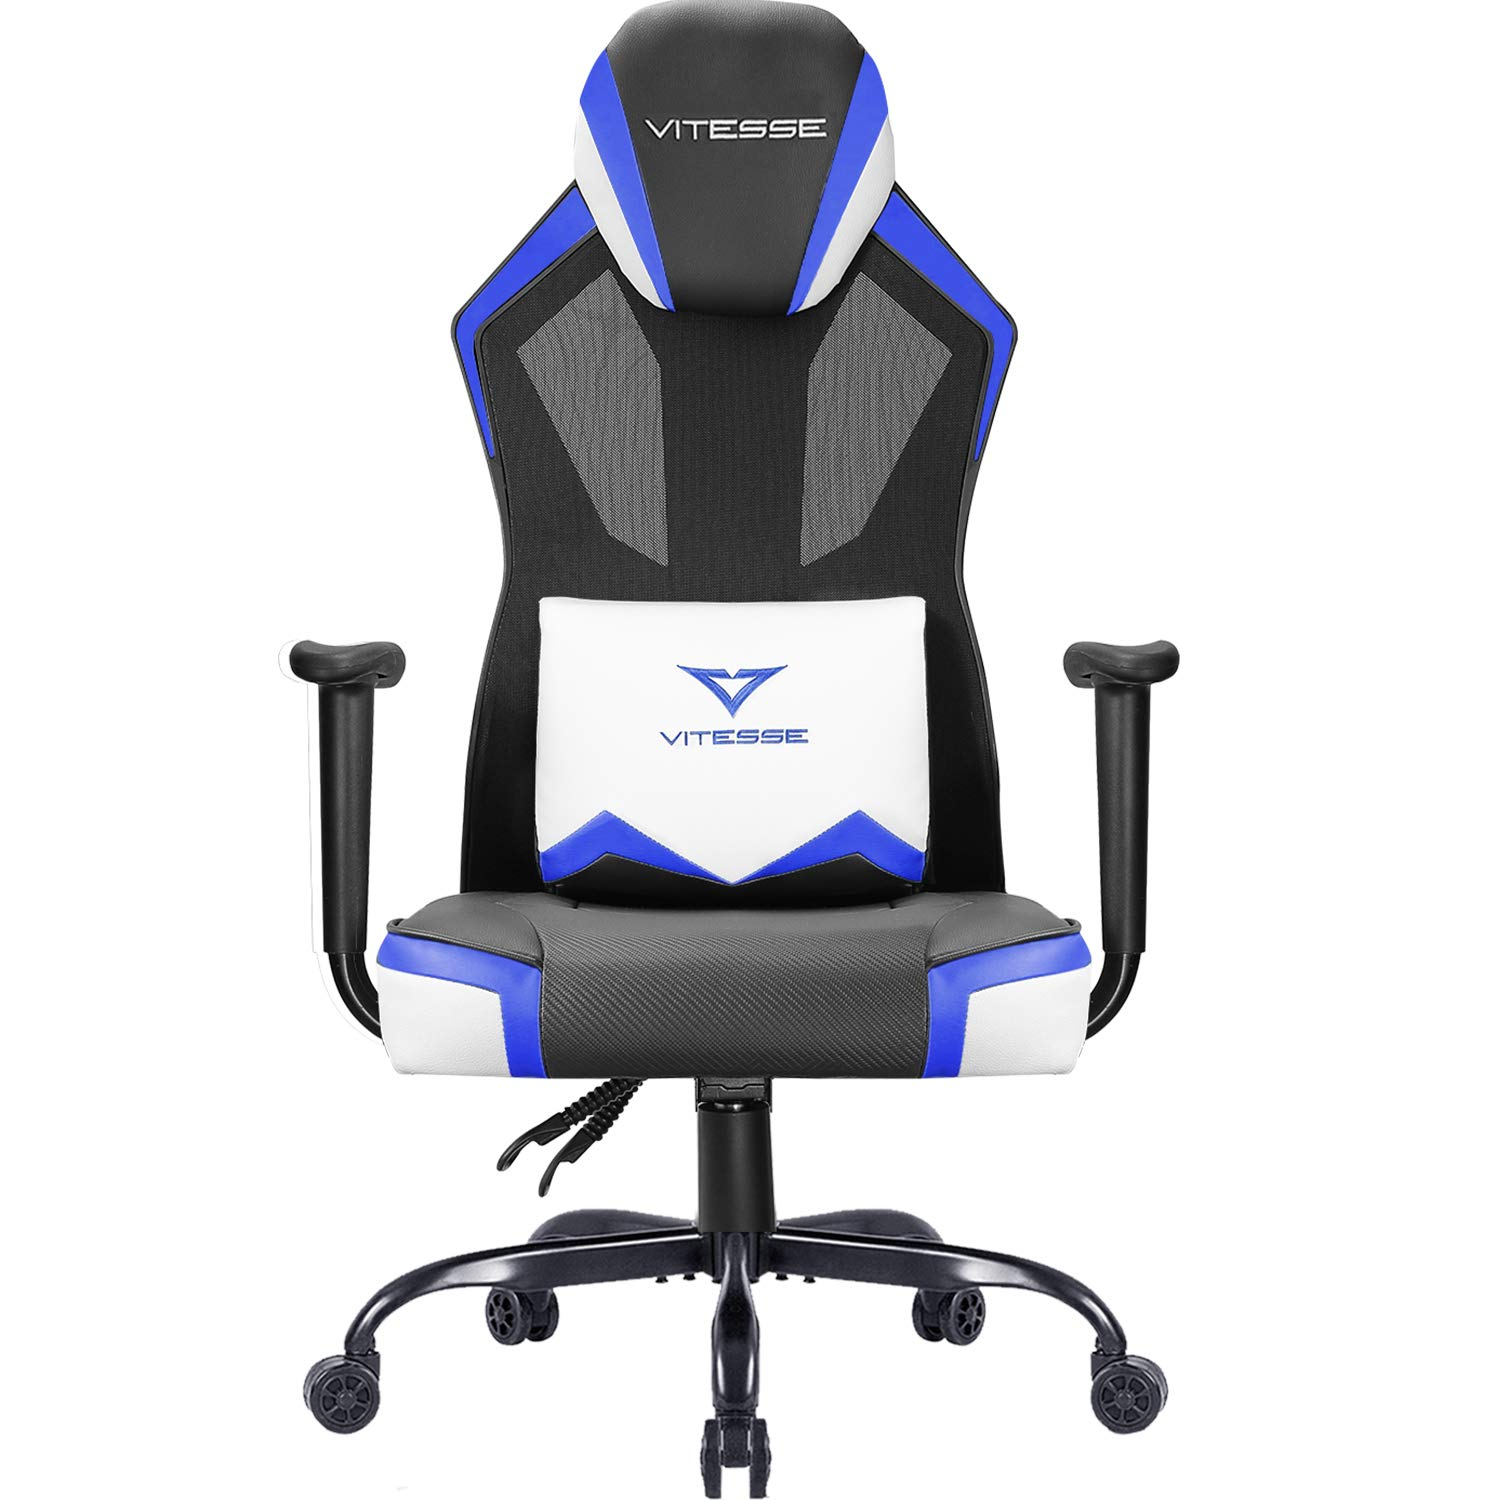 Vitesse Gaming Chair Breathable Mesh High Back Racing Style Office Chair Ergonomic Swivel Computer Desk Chair with Lumbar Support Blue